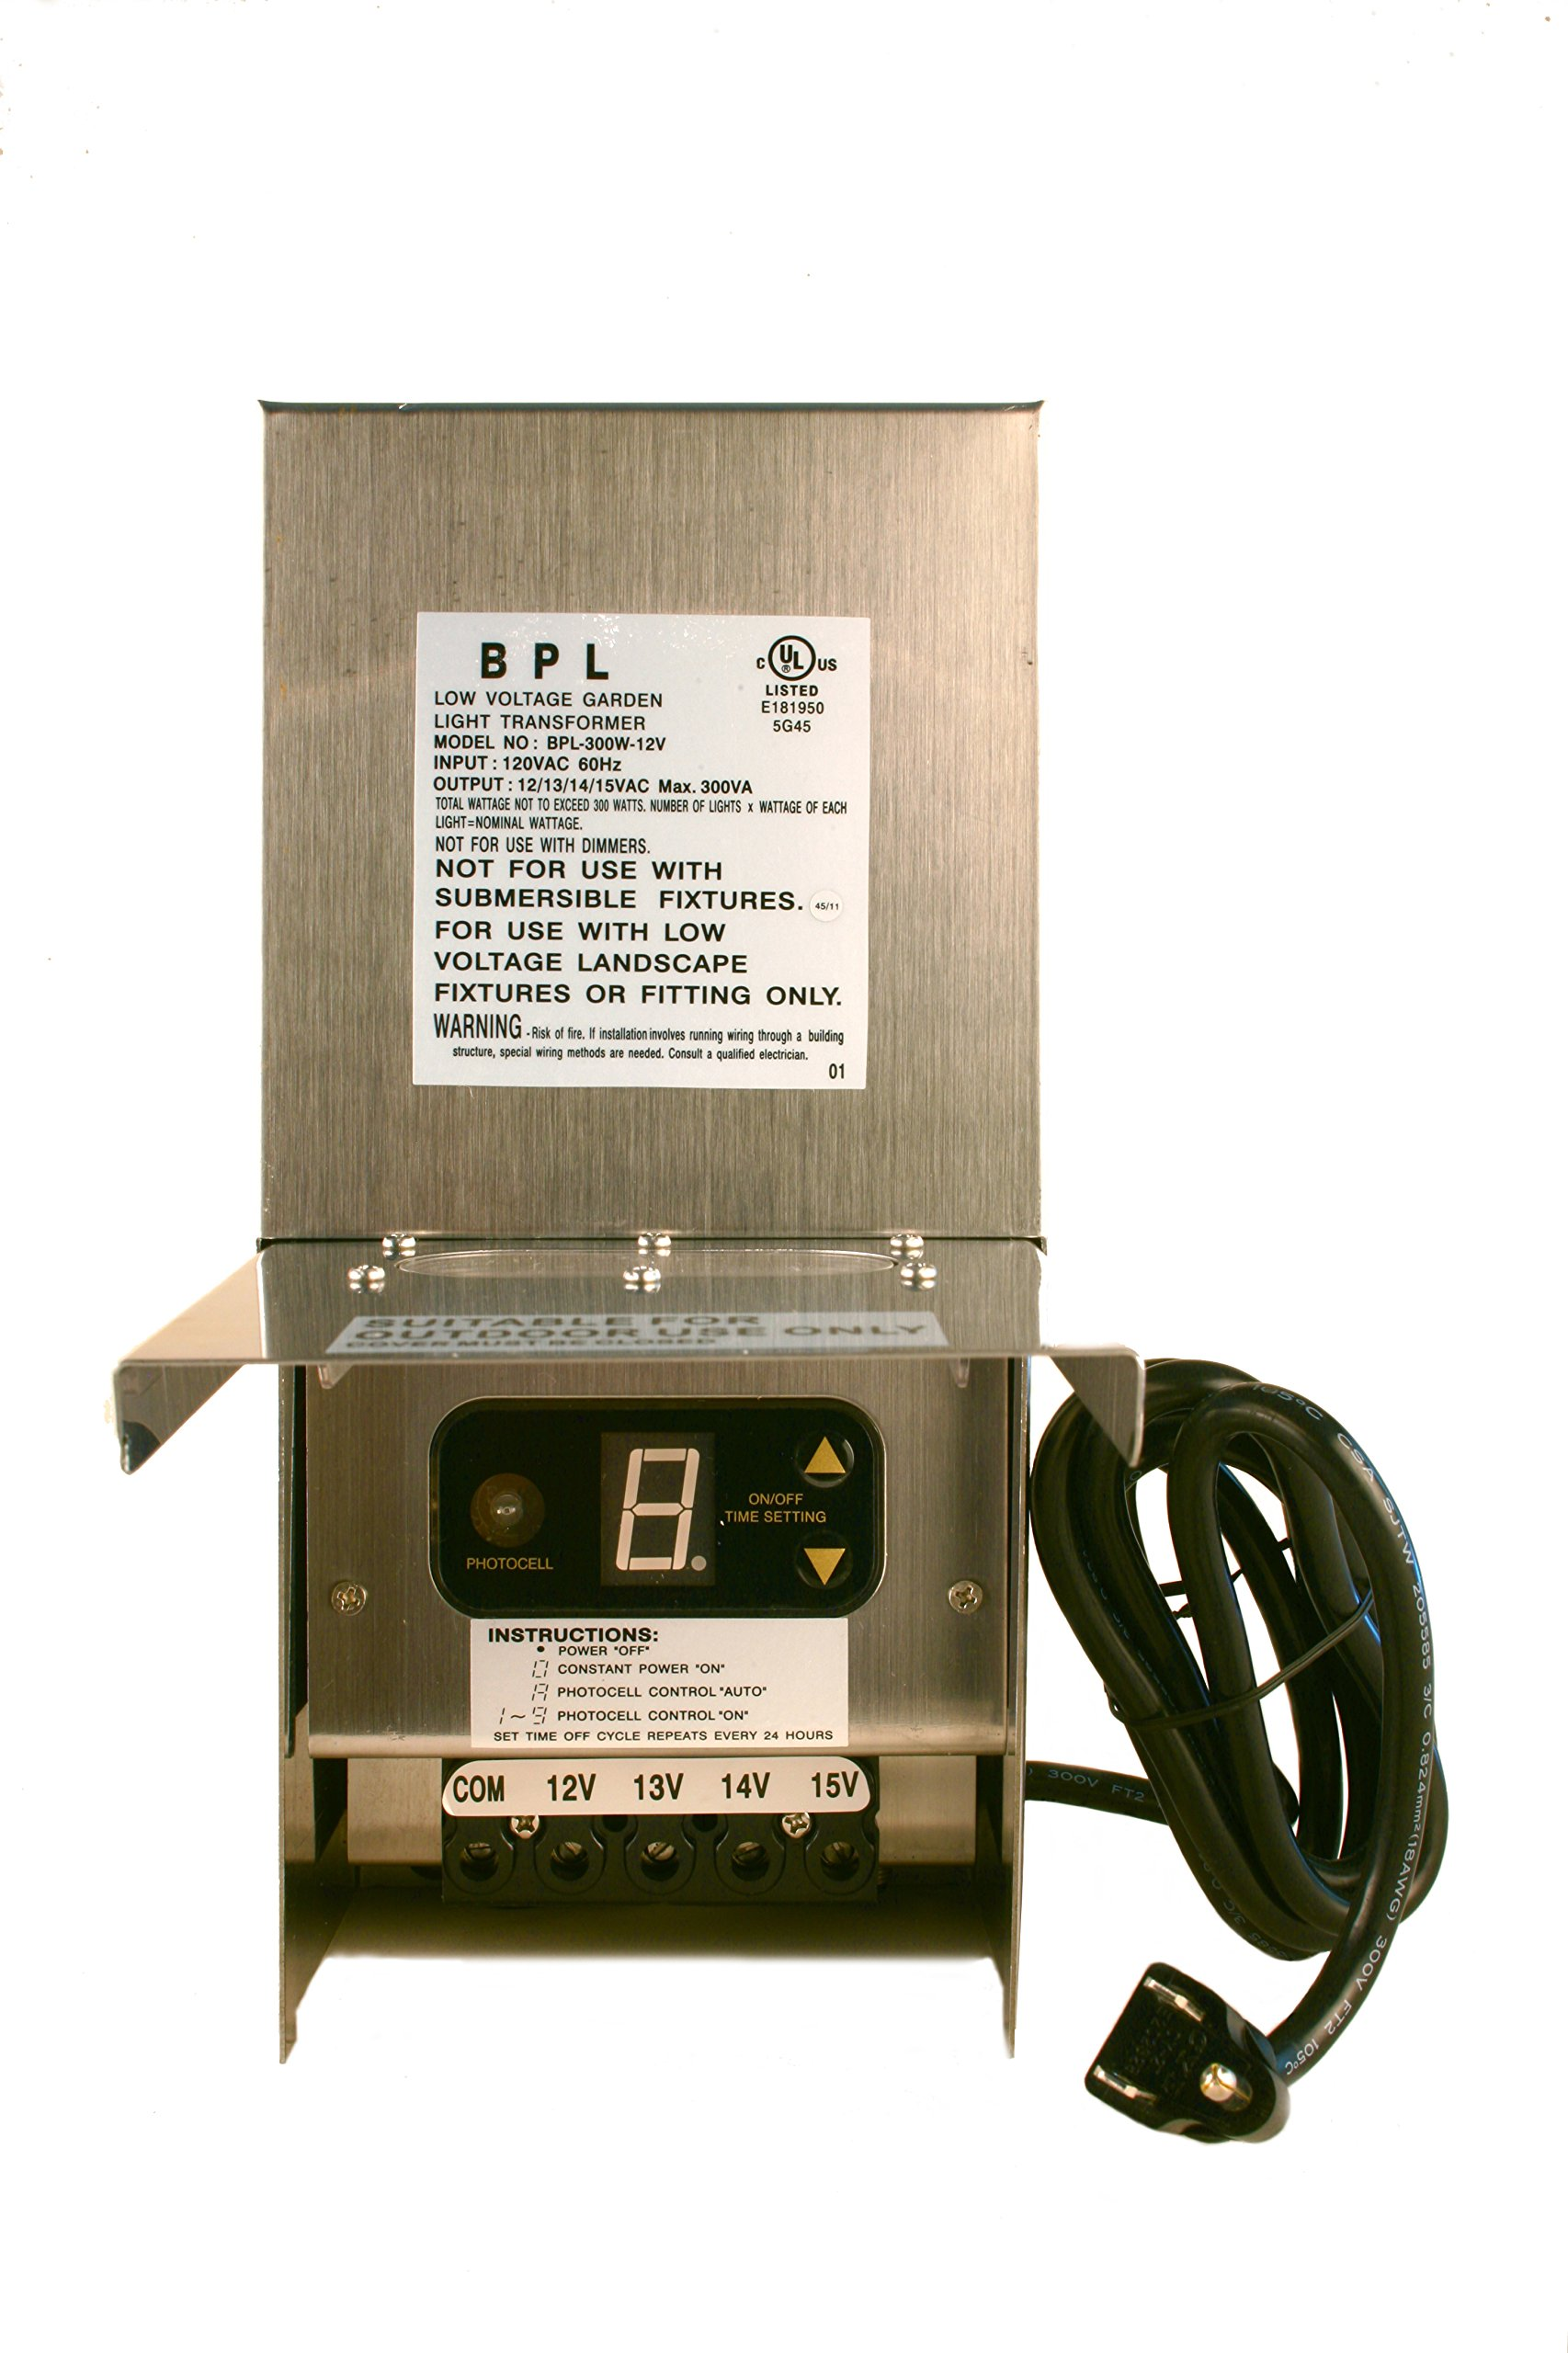 300W Stainless Steel Low Voltage Landscape Light Transformer 12V